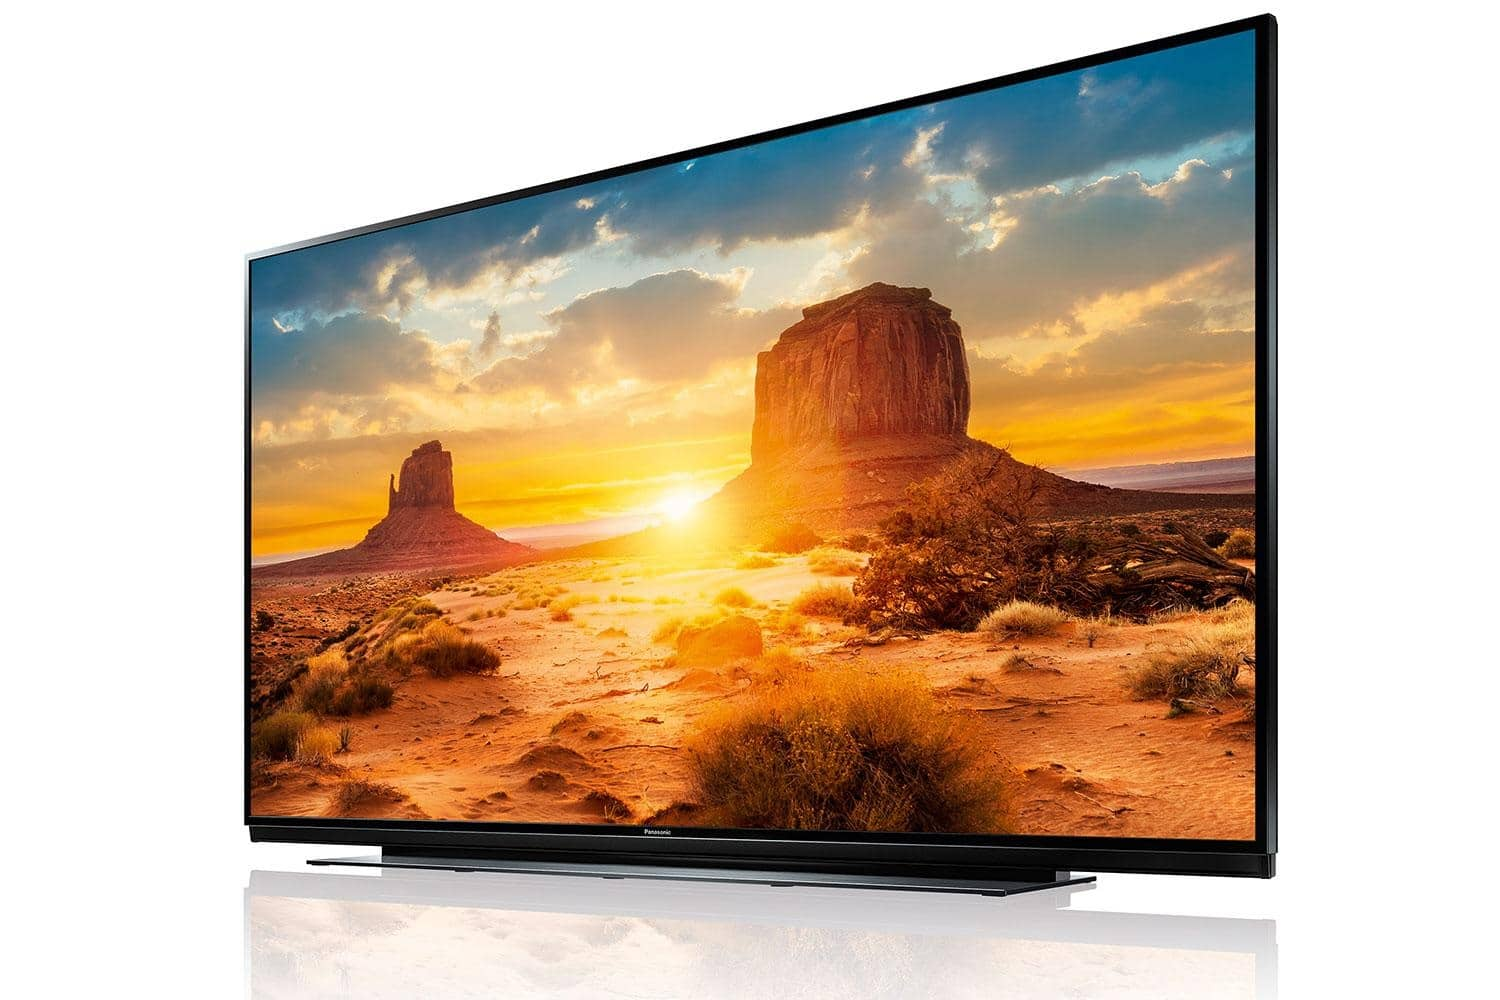 panasonic hei t netflix auf viera smart tvs willkommen 4k filme. Black Bedroom Furniture Sets. Home Design Ideas